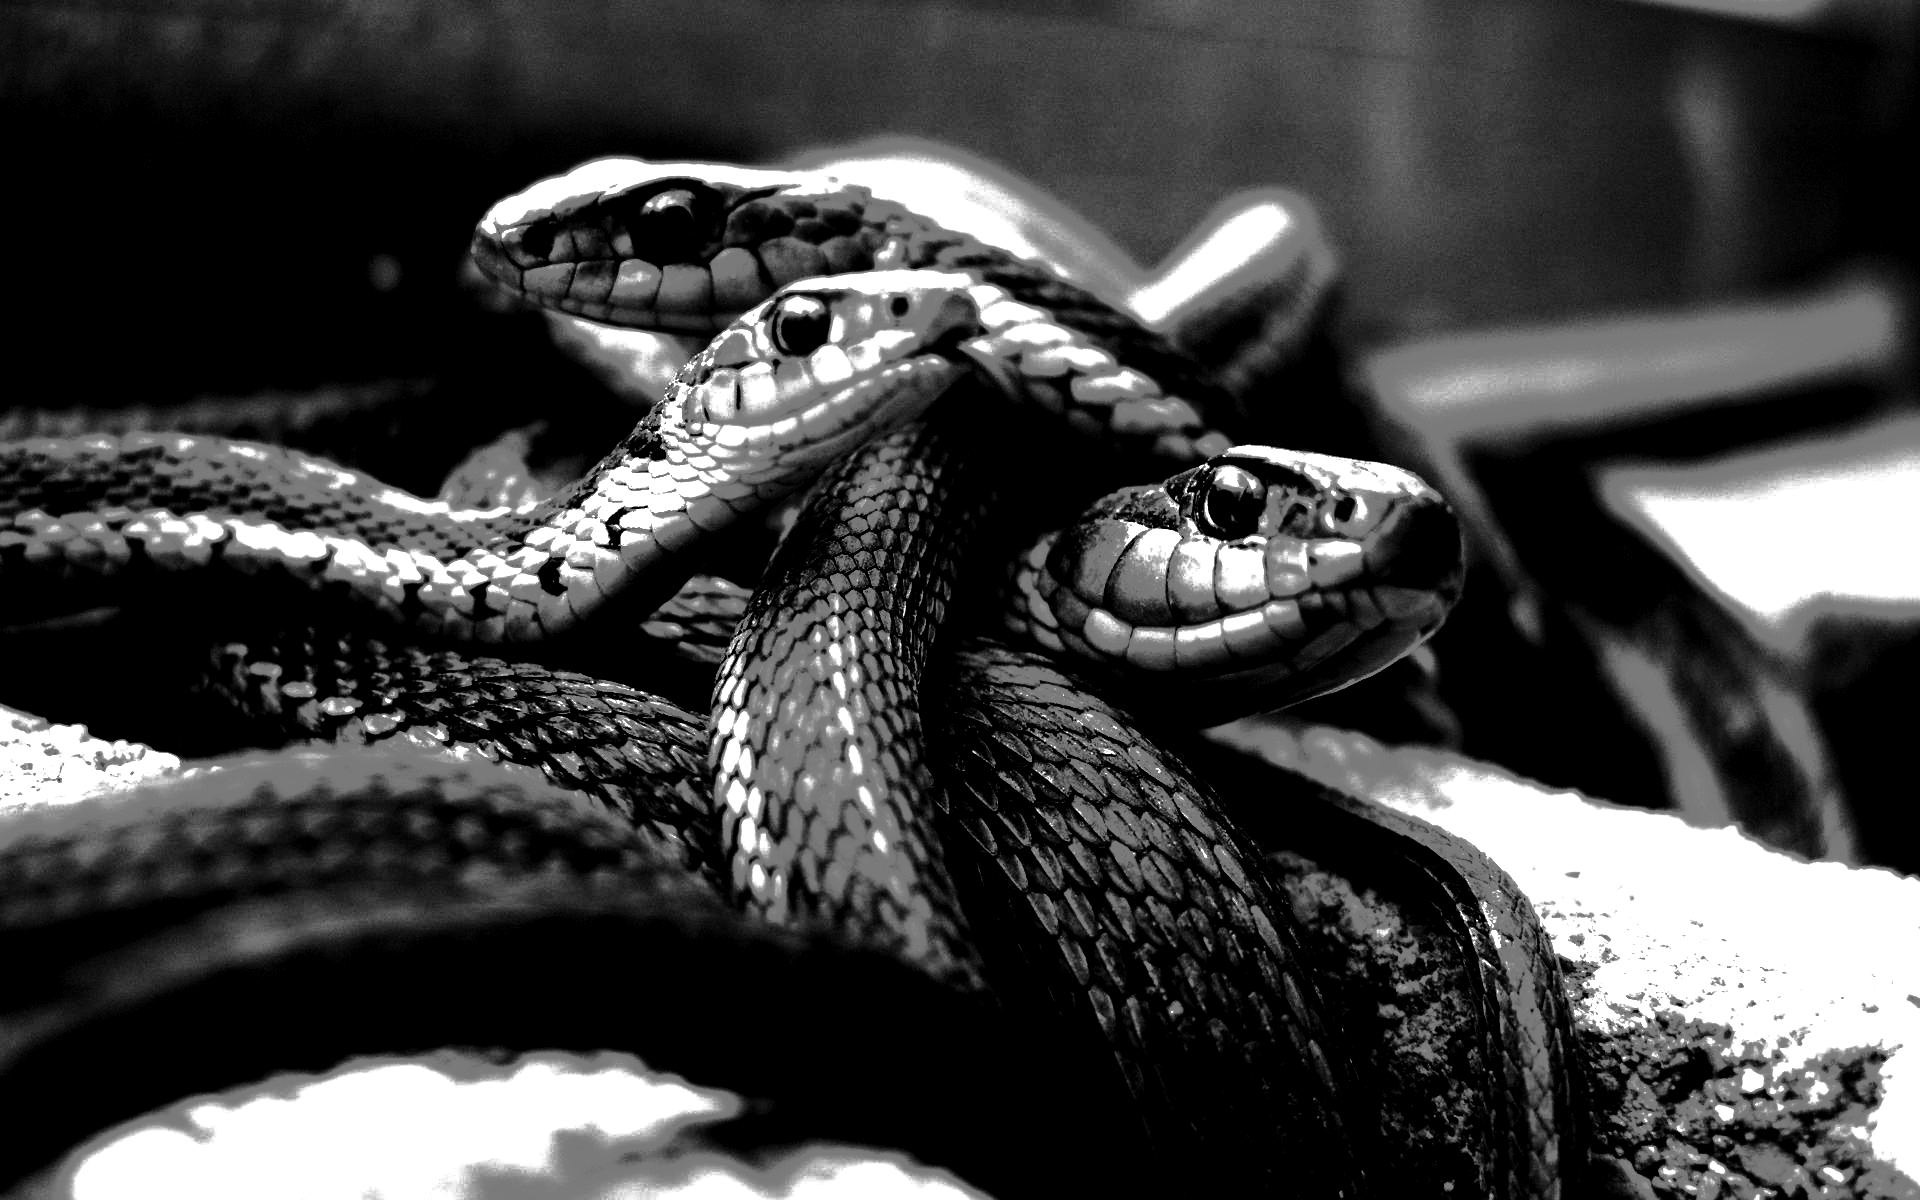 Snakes grayscale monochrome